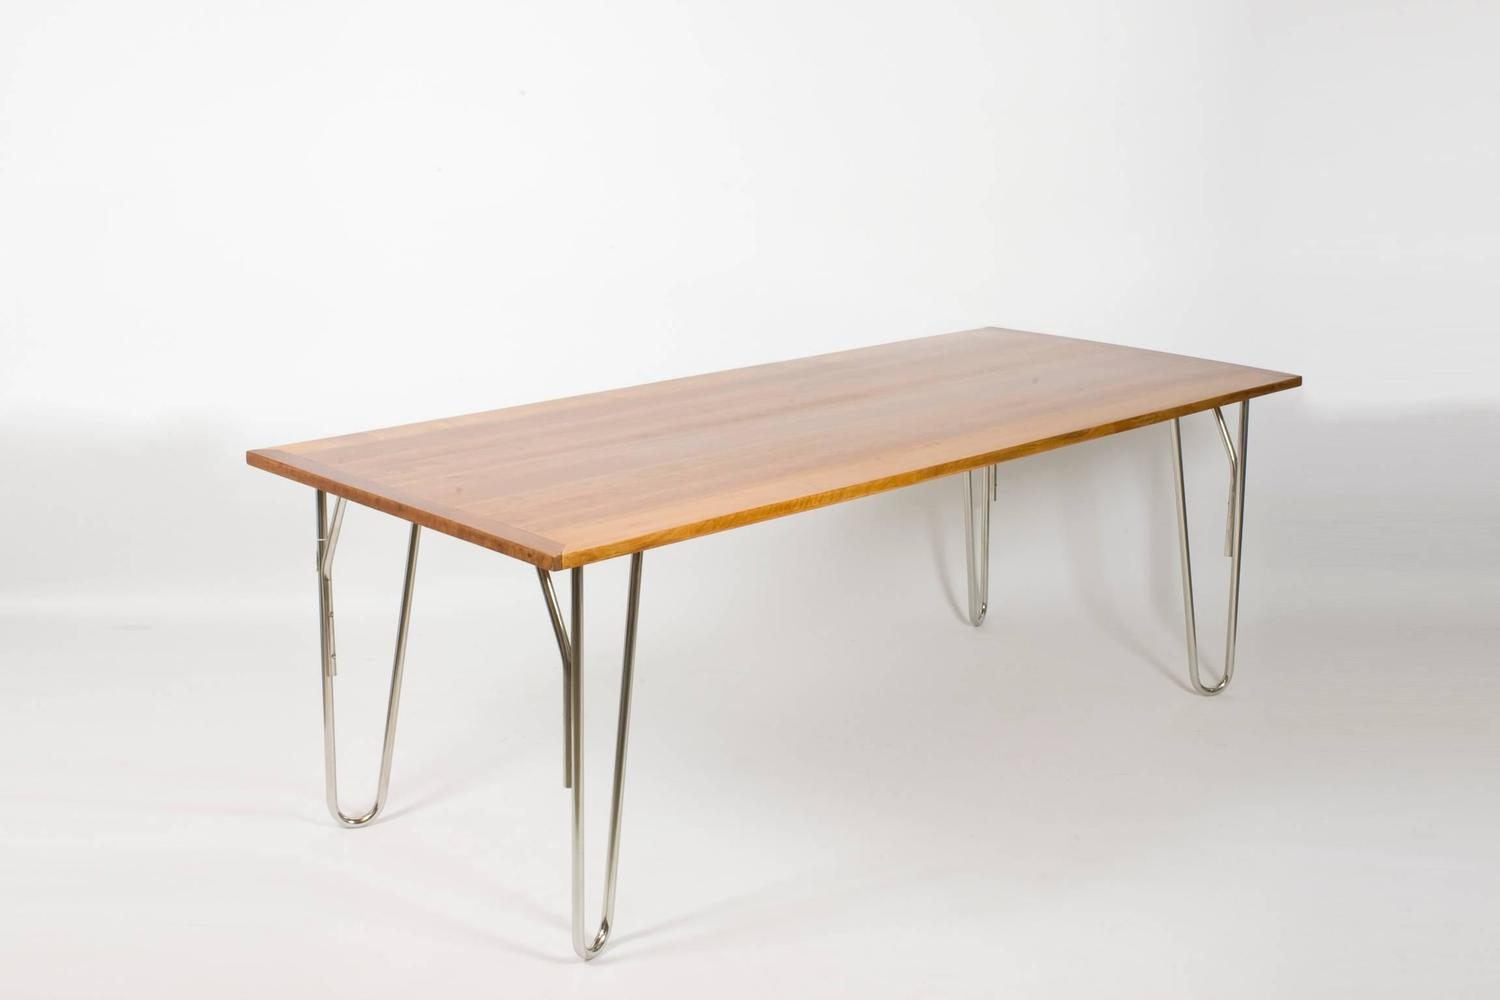 Art deco style dining room table steel tube and polished cherry for sale at 1stdibs - Steel dining room table ...